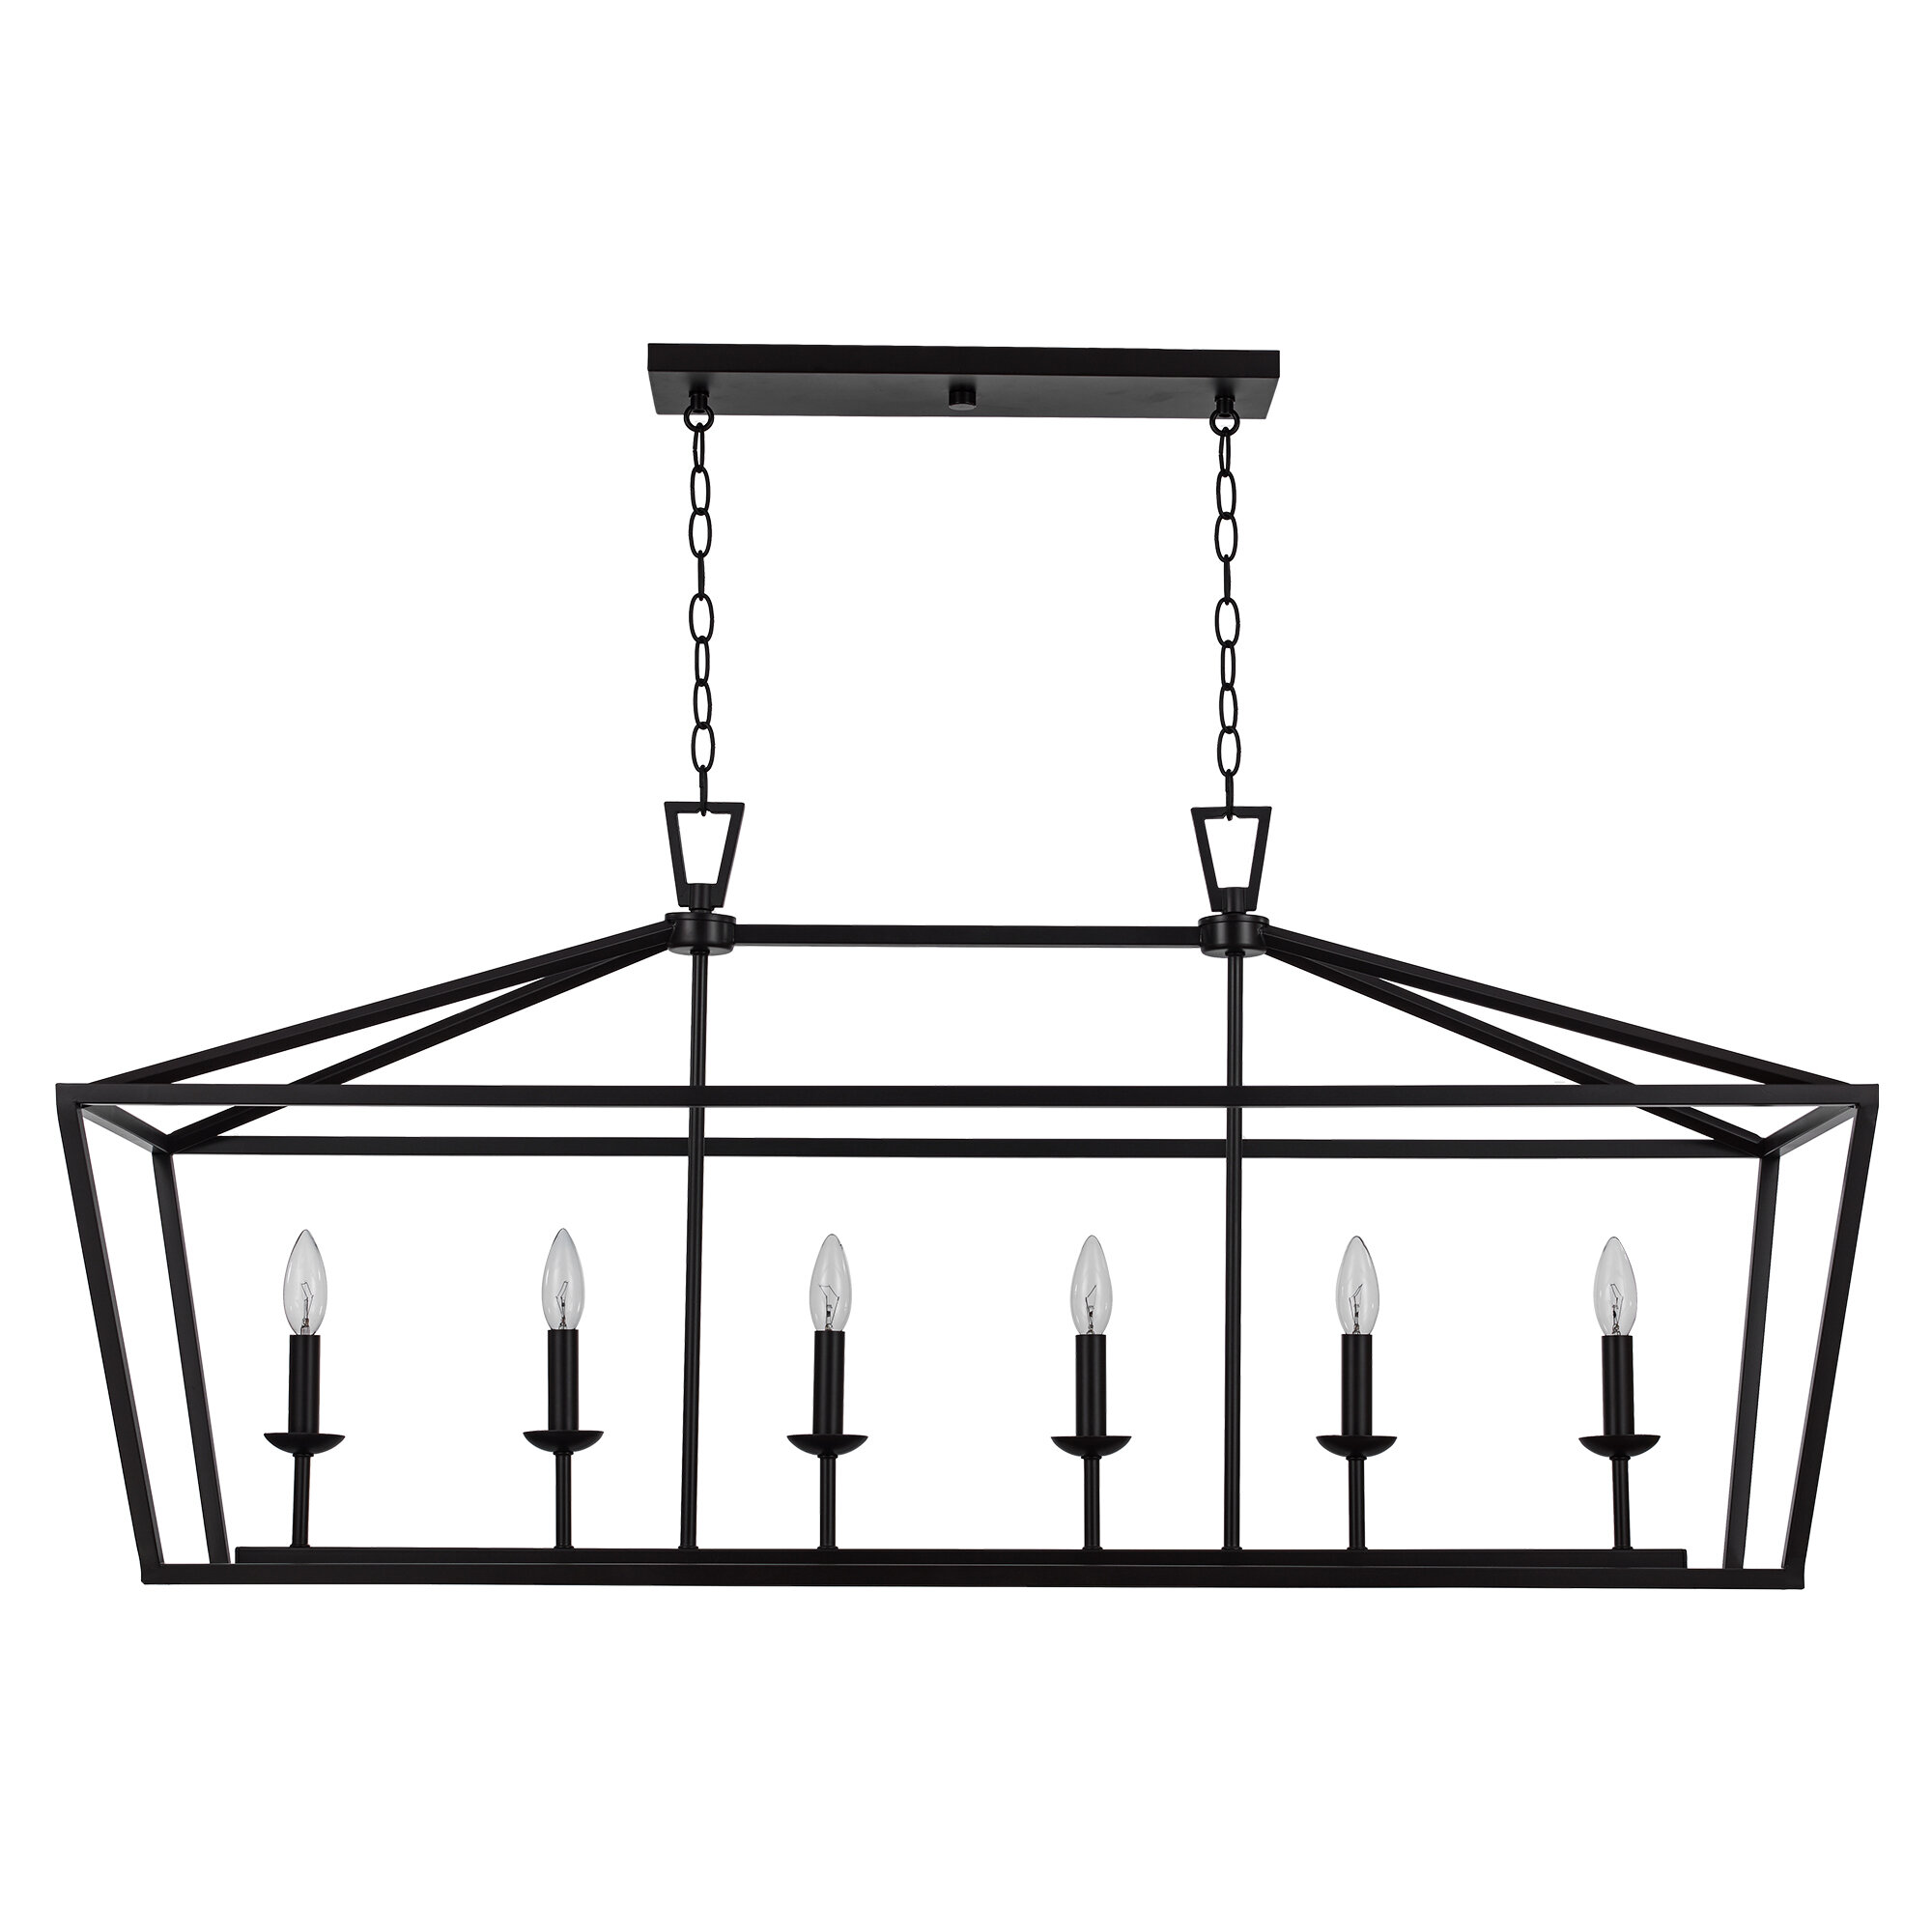 Laurel Foundry Modern Farmhouse Carmen 6 Light Kitchen Island Linear Pendant Reviews Wayfair